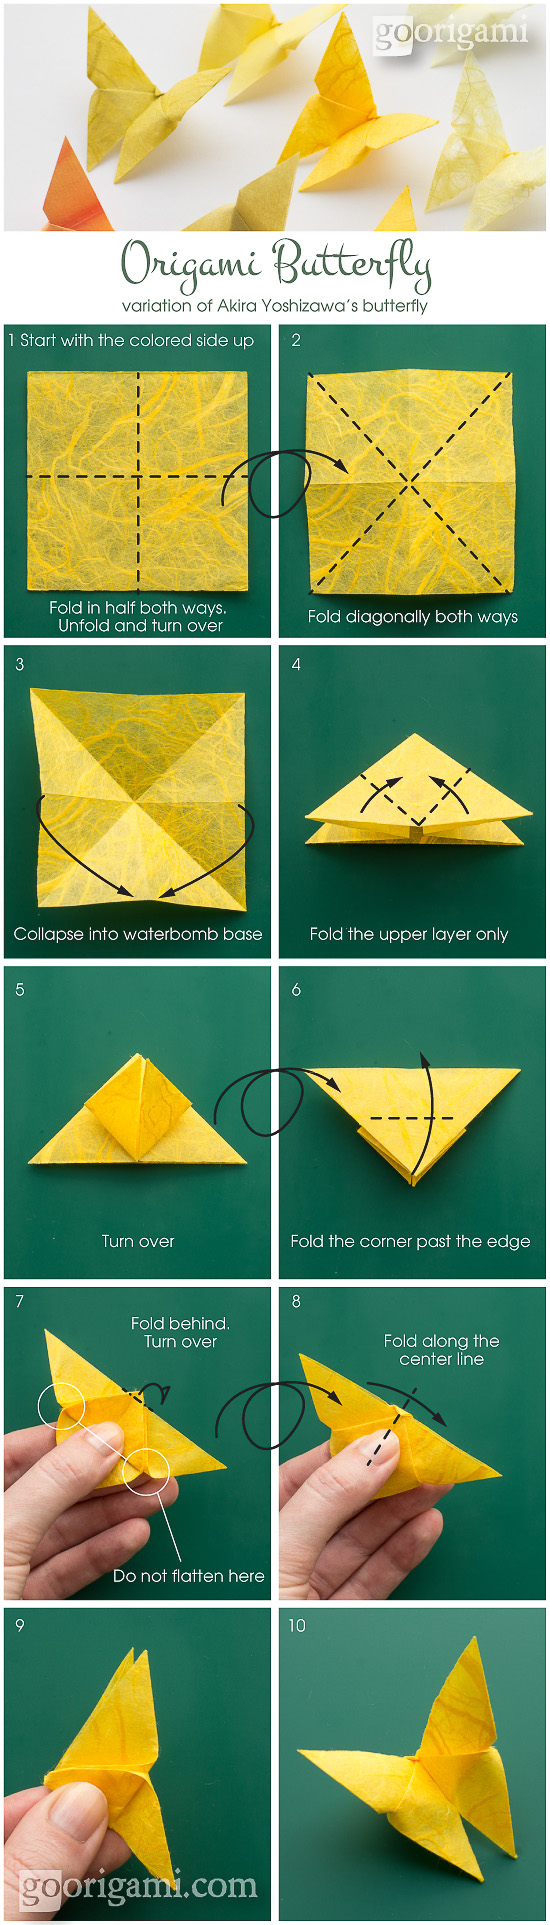 3 Ways to Make Origami - wikiHow | 1925x550